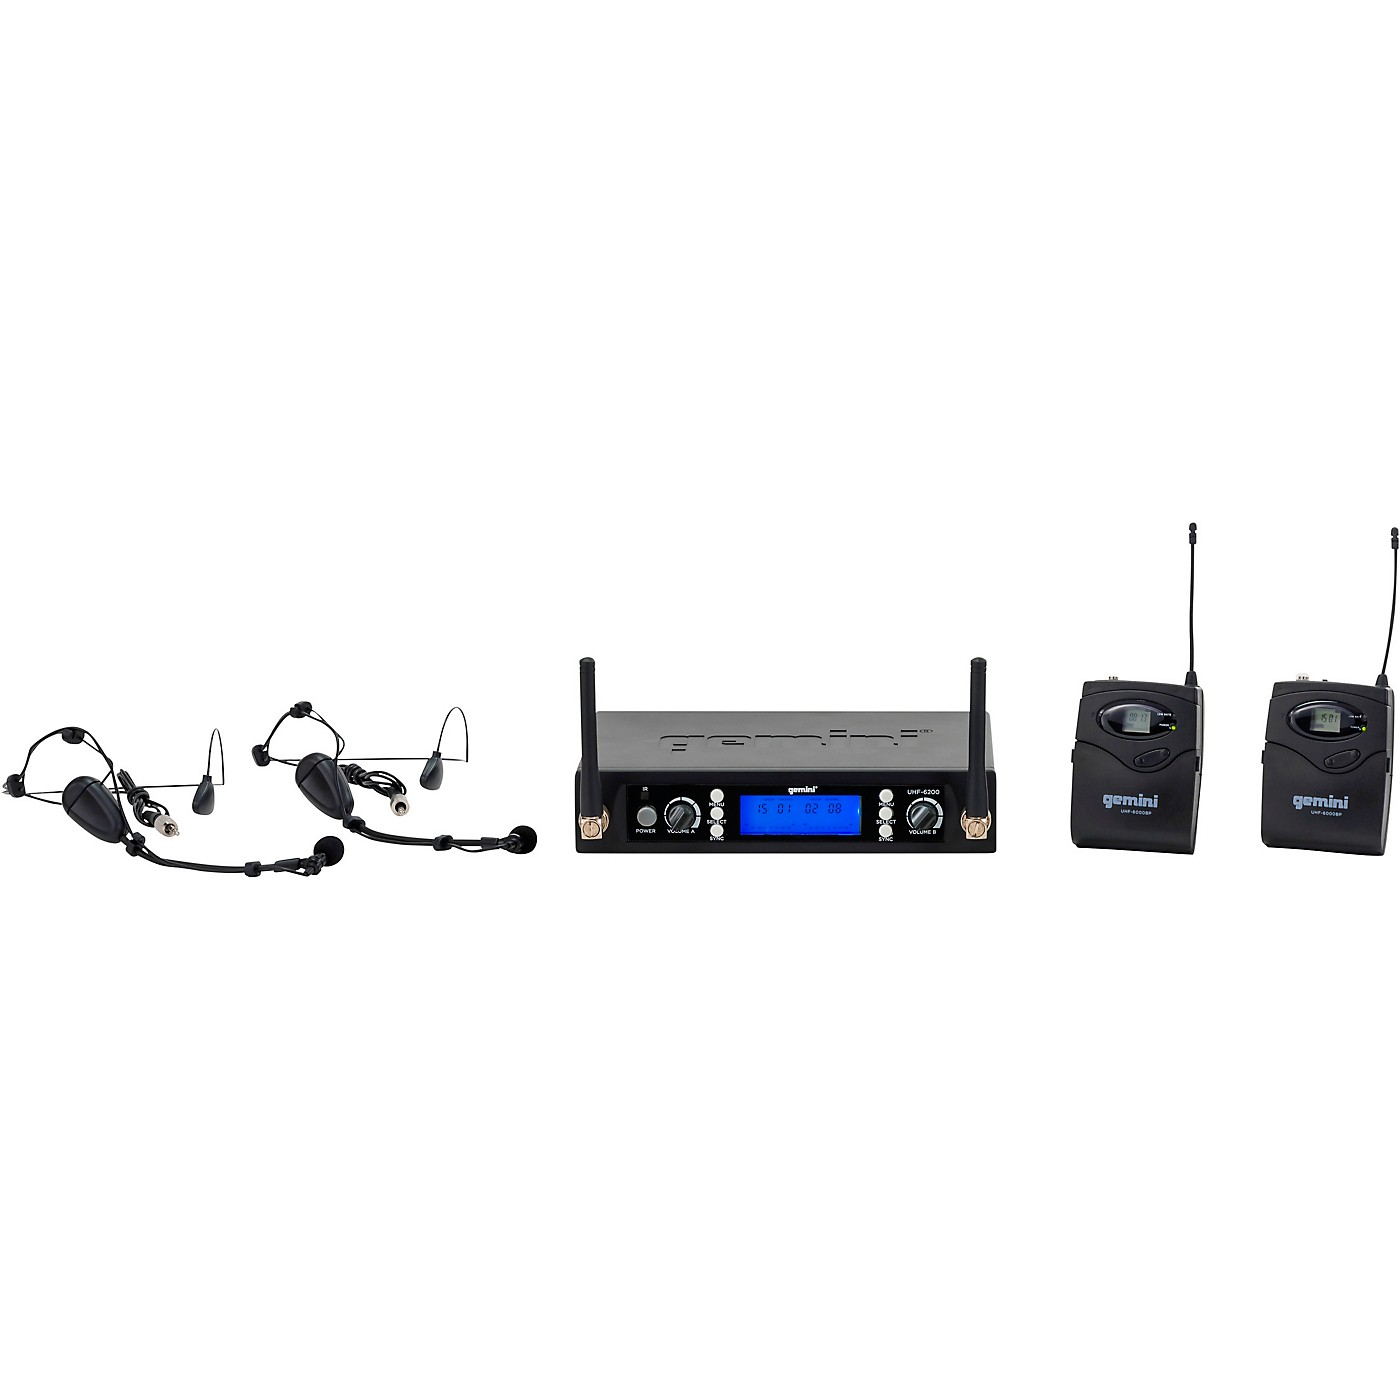 Gemini UHF-6200HL Dual Headset With Detachable Lavalier Wireless System thumbnail